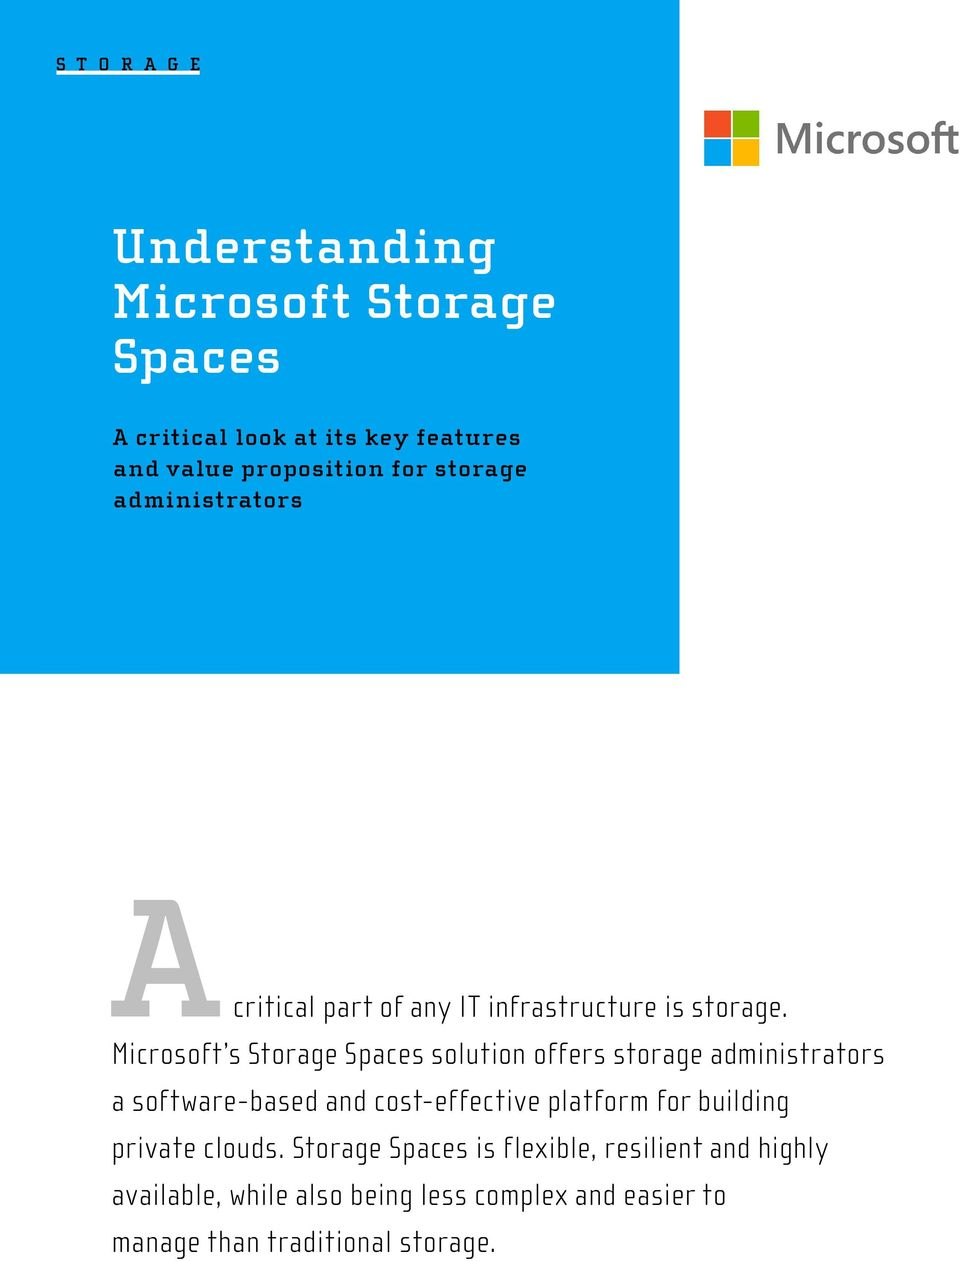 infrastructure is storage. a software-based and cost-effective platform for building private clouds.